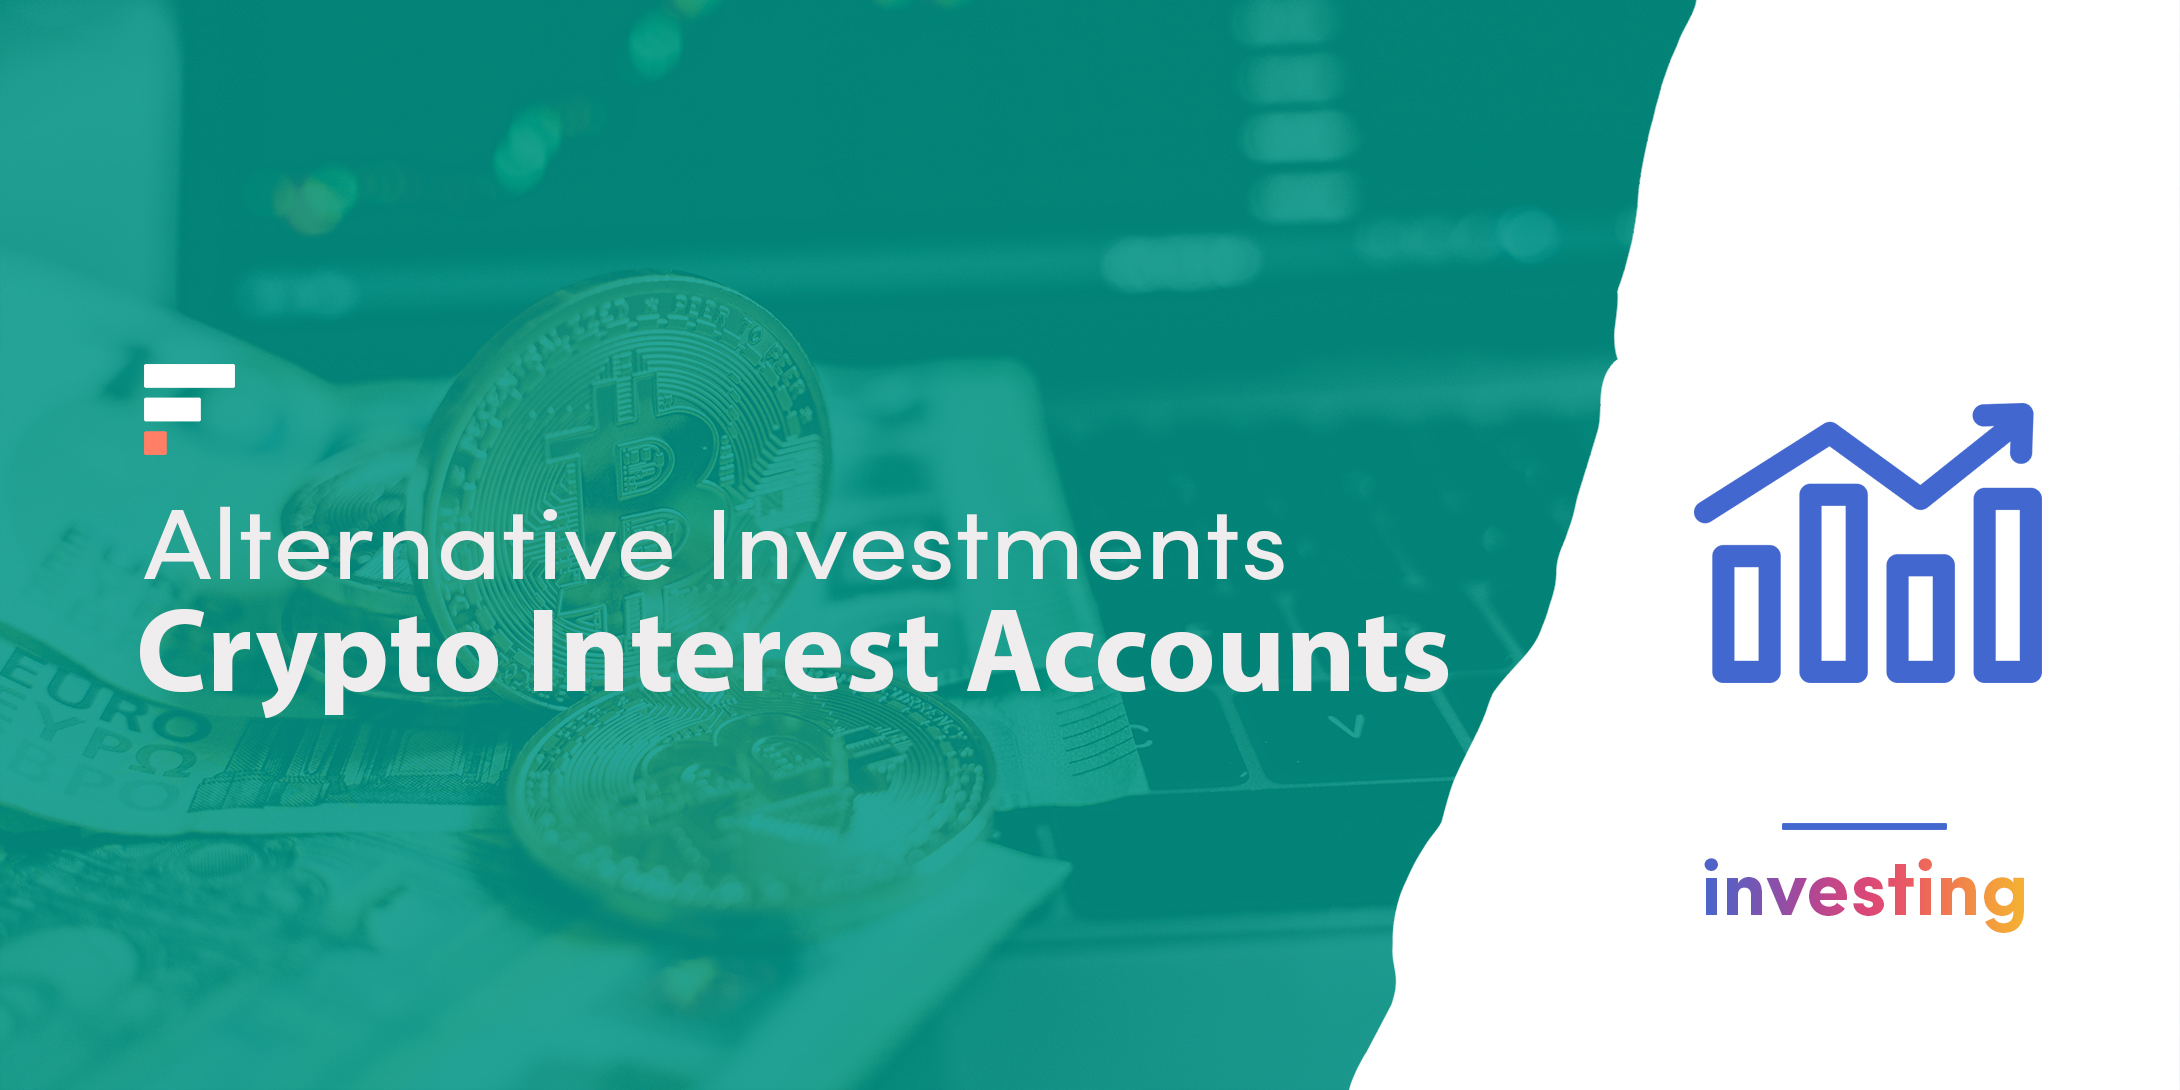 Crypto interest accounts